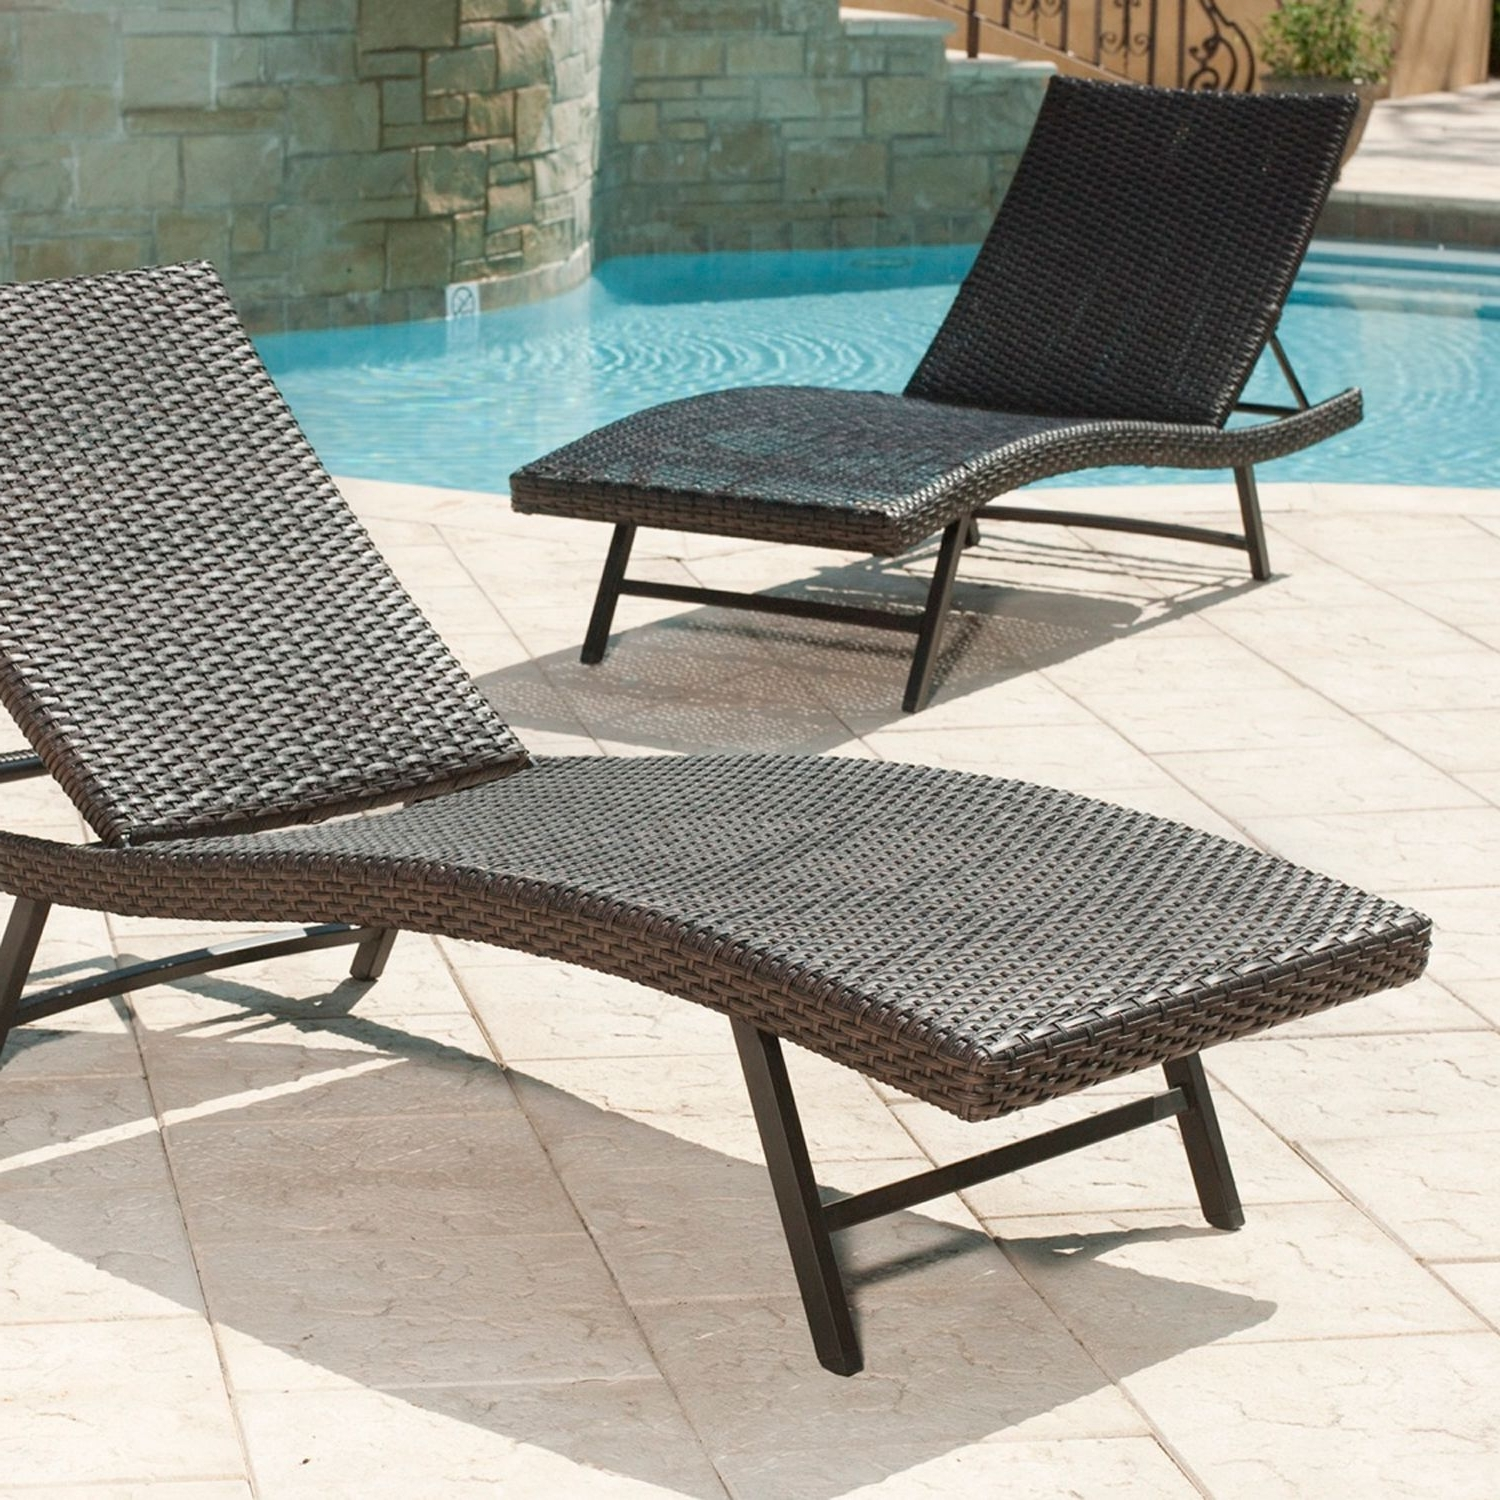 Best And Newest Lounge Chair : Furniture Outdoor Double Chaise Outdoor Pool Chaise Regarding Outdoor Pool Furniture Chaise Lounges (View 1 of 15)